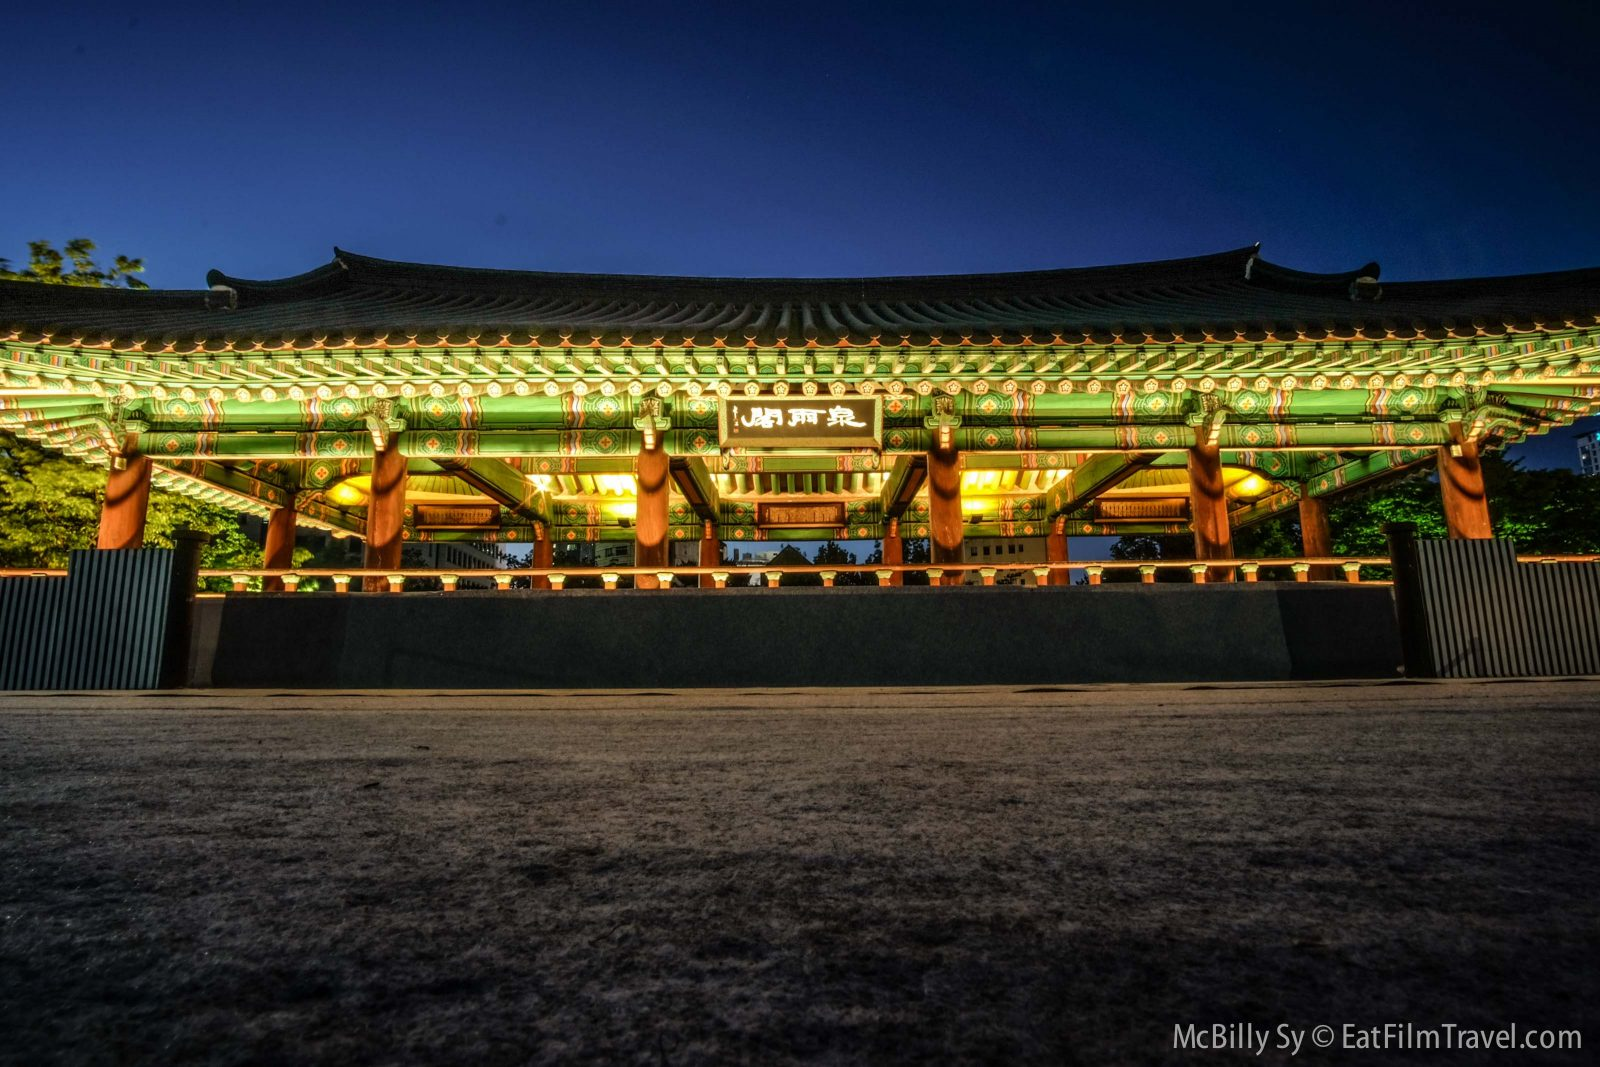 Night shots in Namsangol Hanok Village